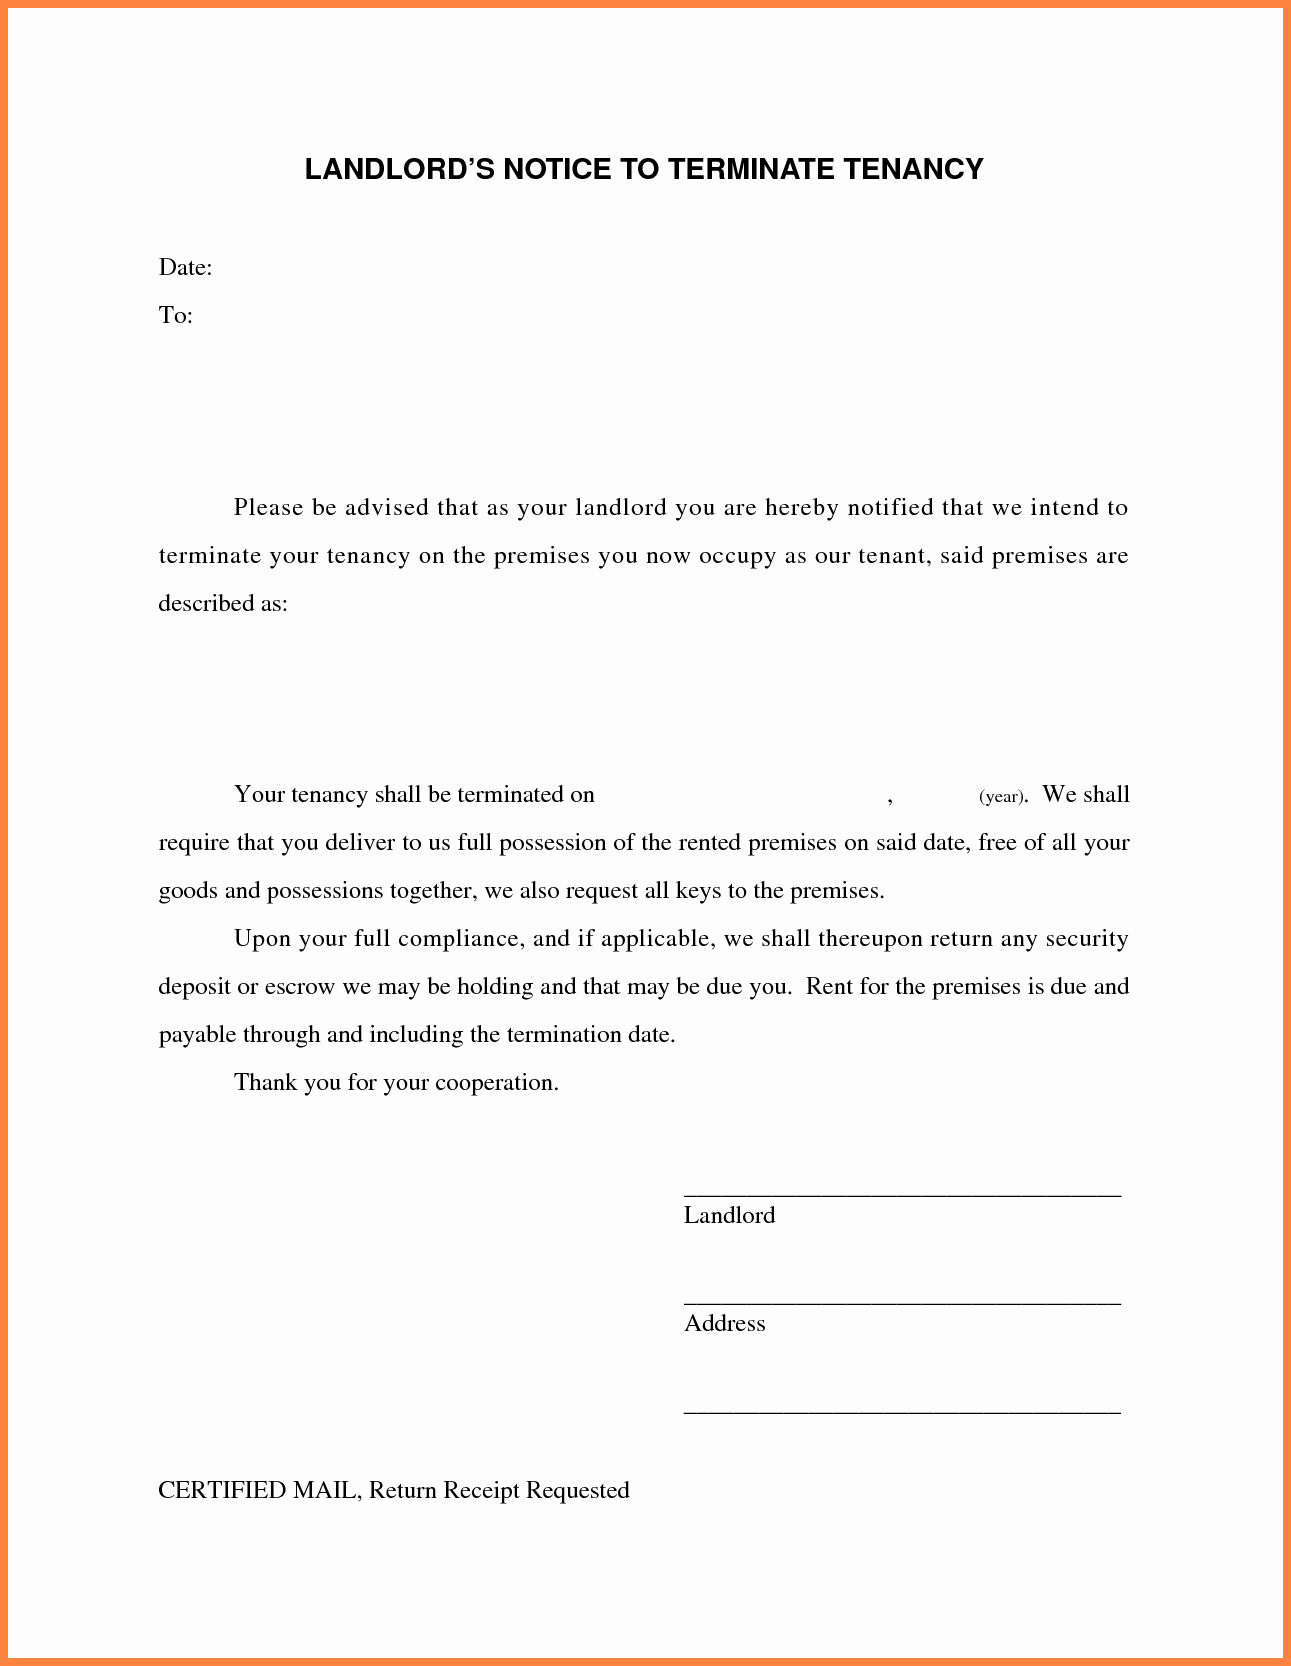 Landlord to Tenant Sample Letters Awesome 7 Landlord Tenant Agreement to Terminate Lease